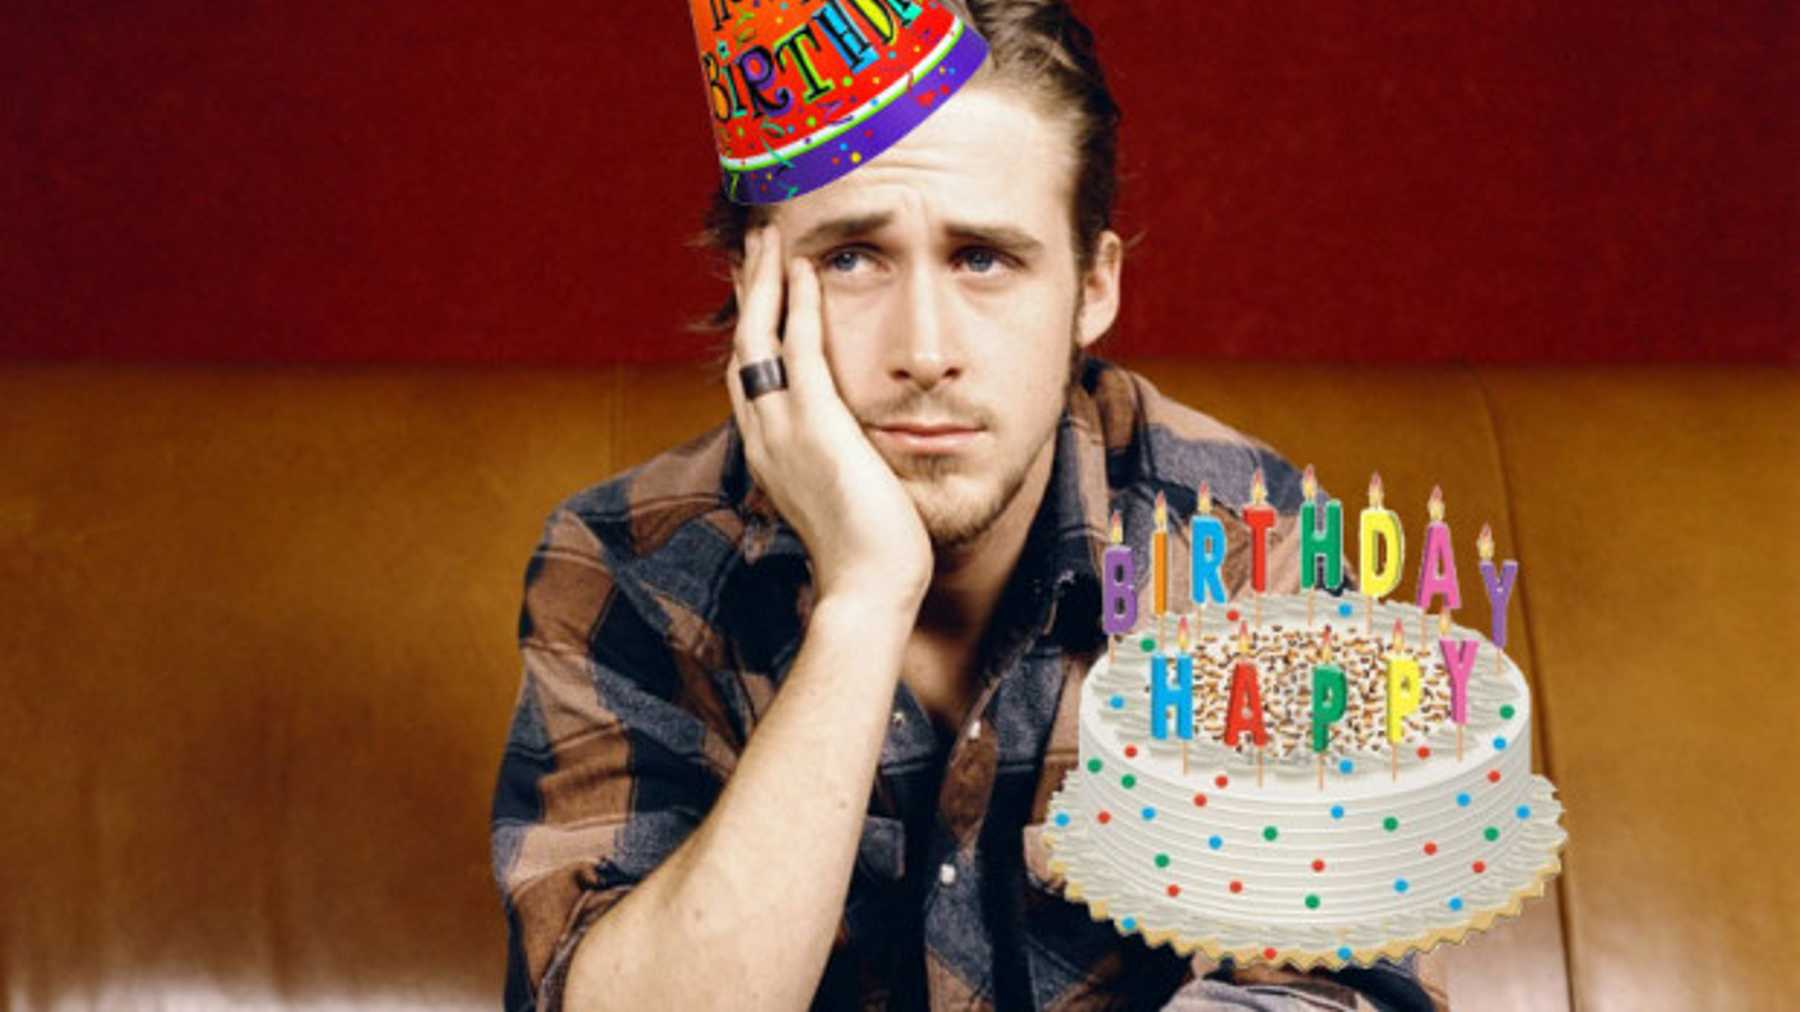 A Round Up Of The Best Ryan Gosling Memes To Celebrate His Birthday